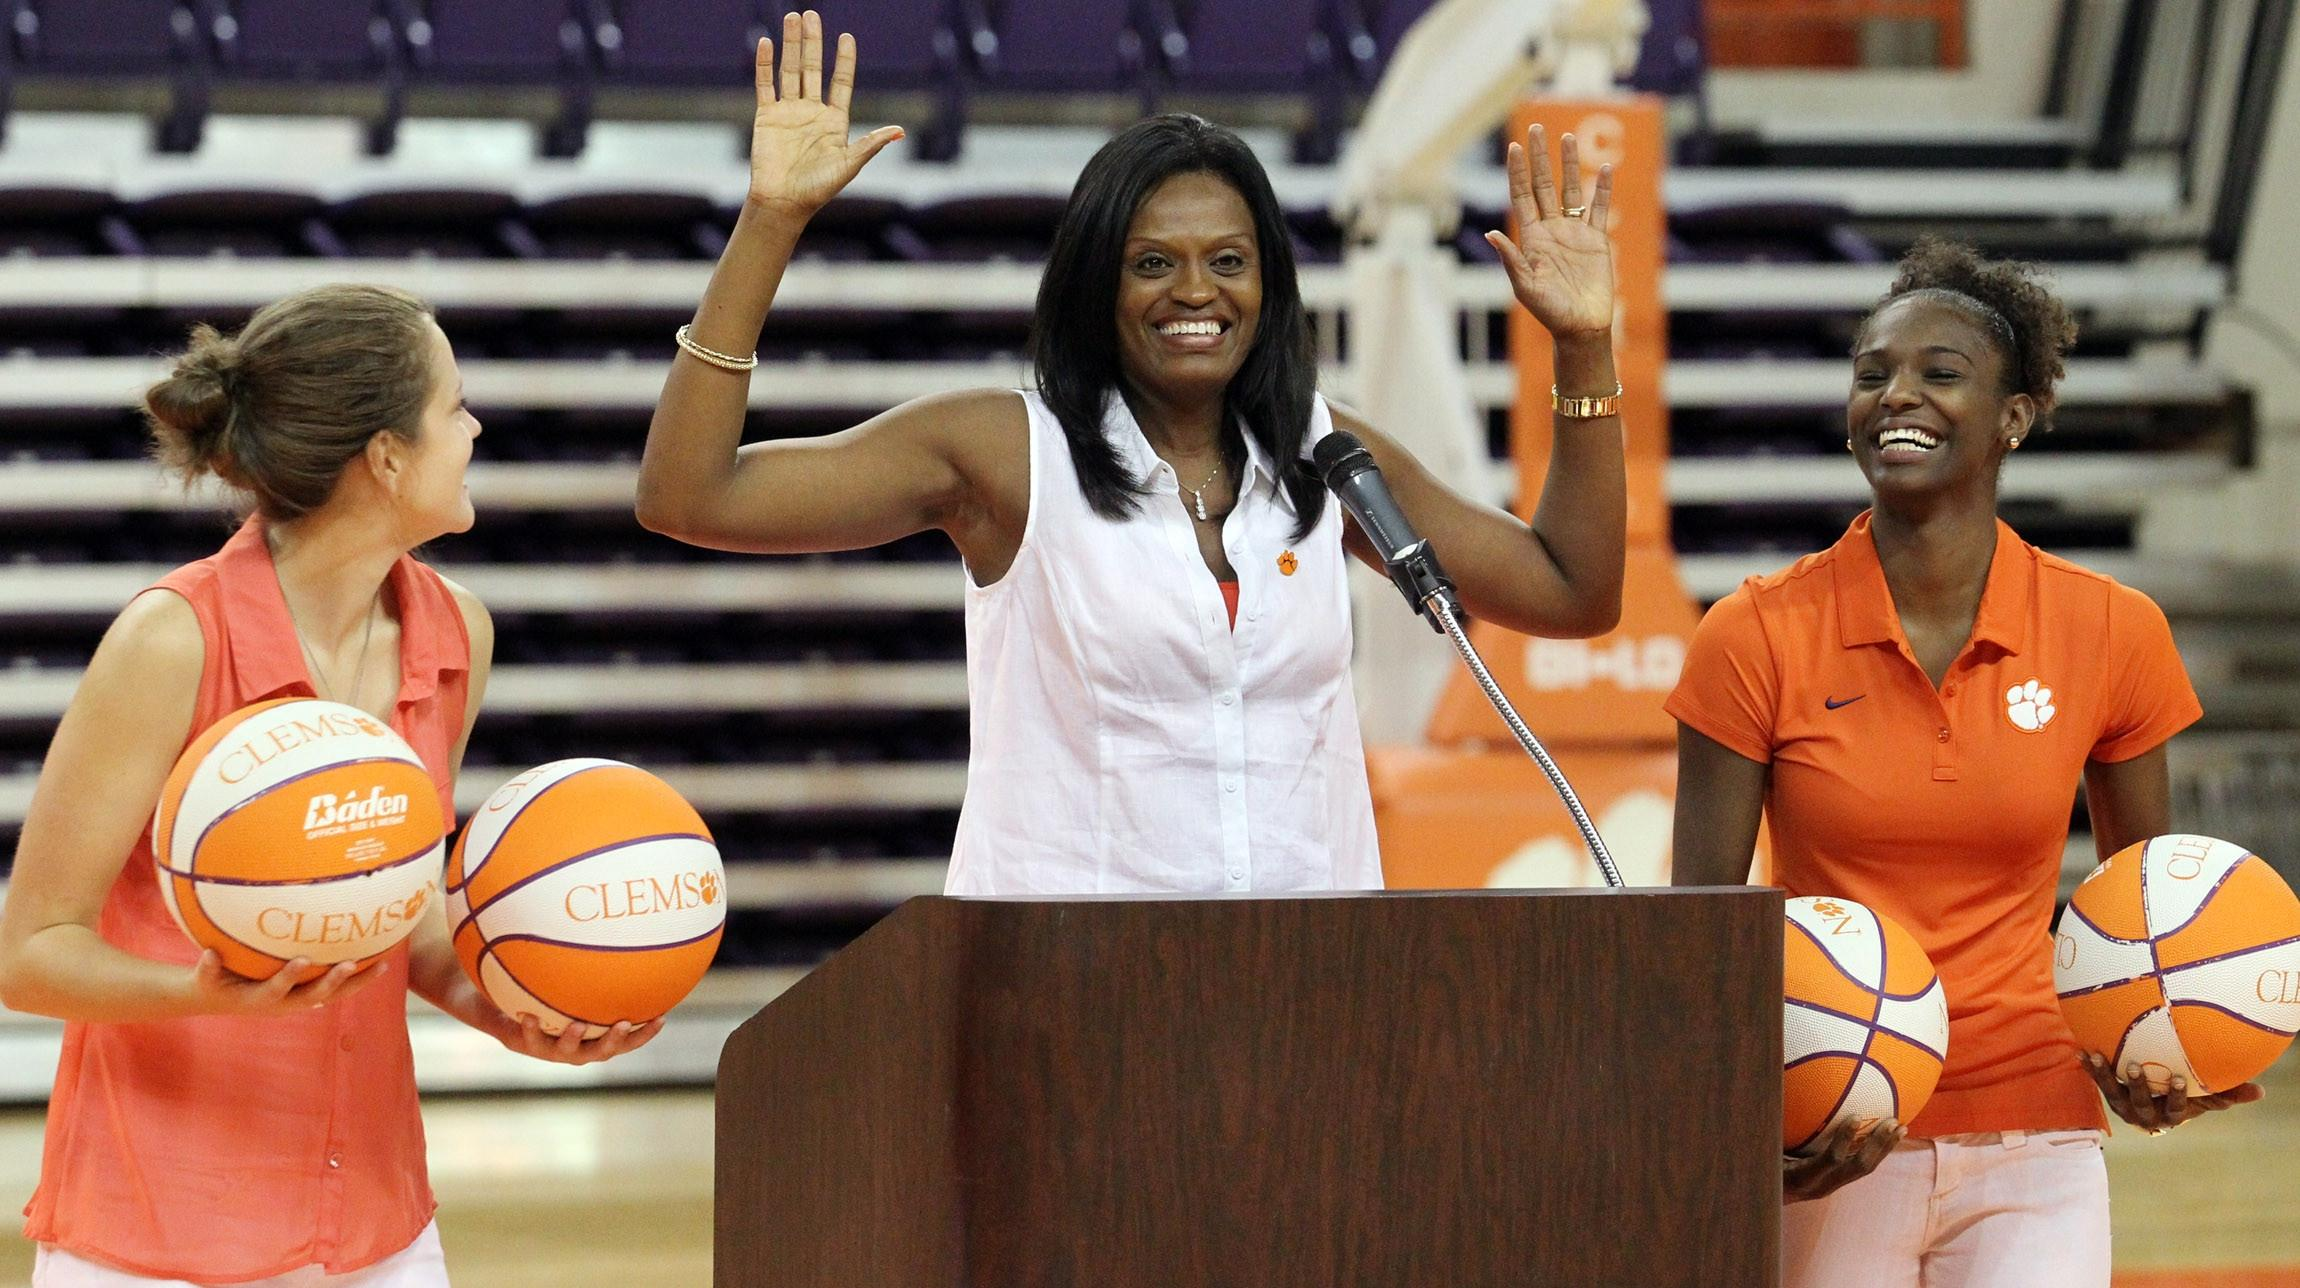 Event Gives New Students a Tutorial on Clemson Athletics